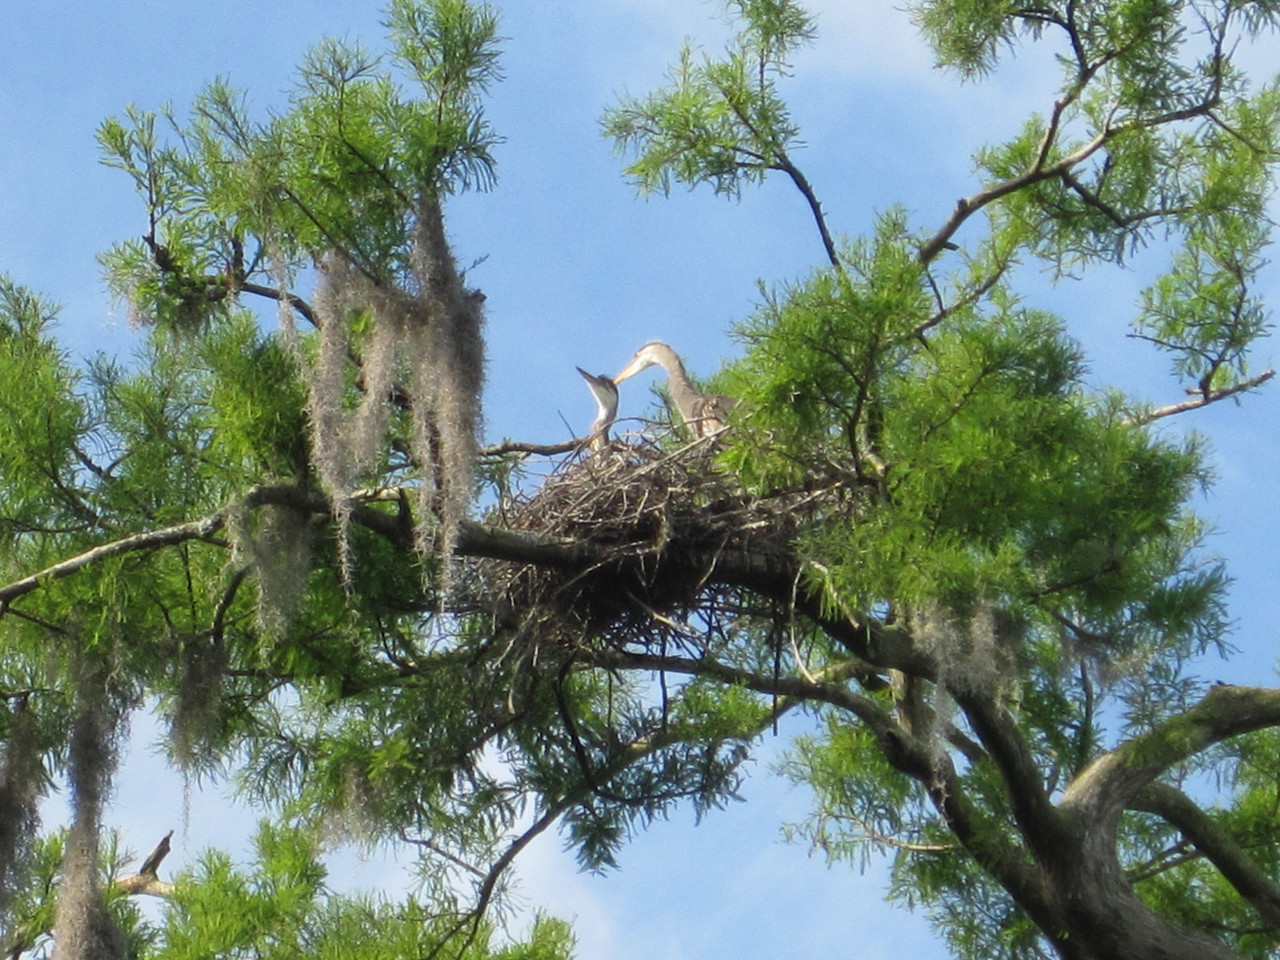 Great herrings nesting above us, as we traveled the river and some of its tributaries.